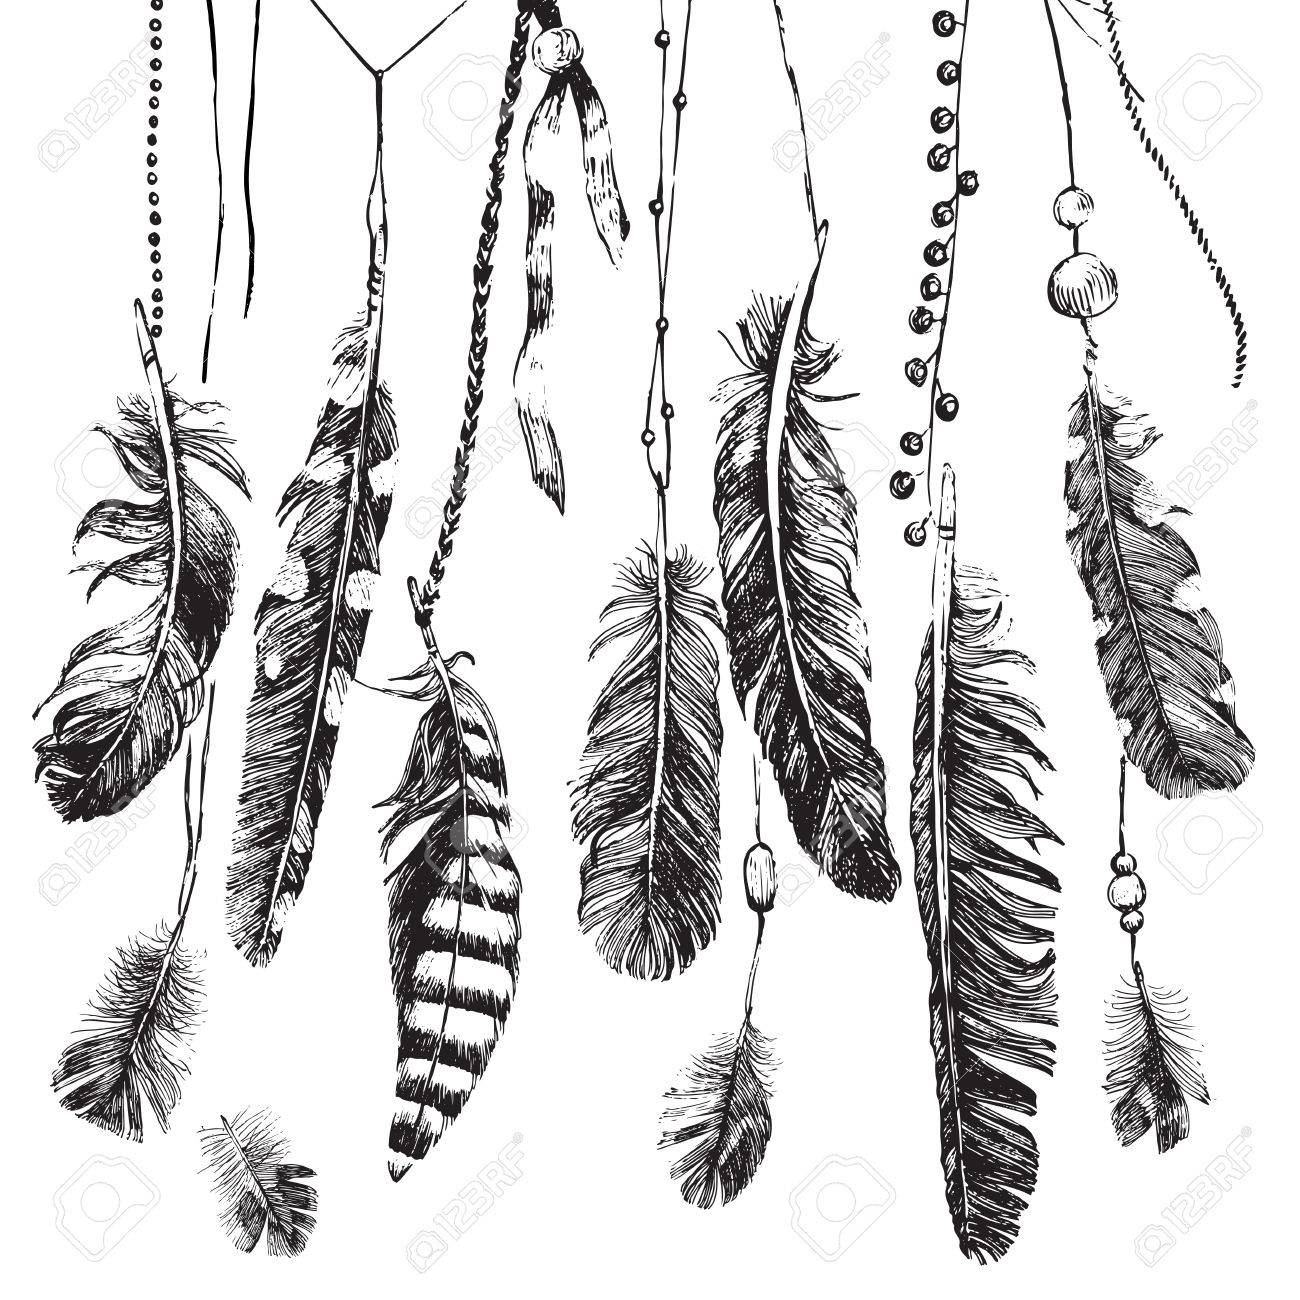 Tribal theme background with hand drawn feathers - 55366943